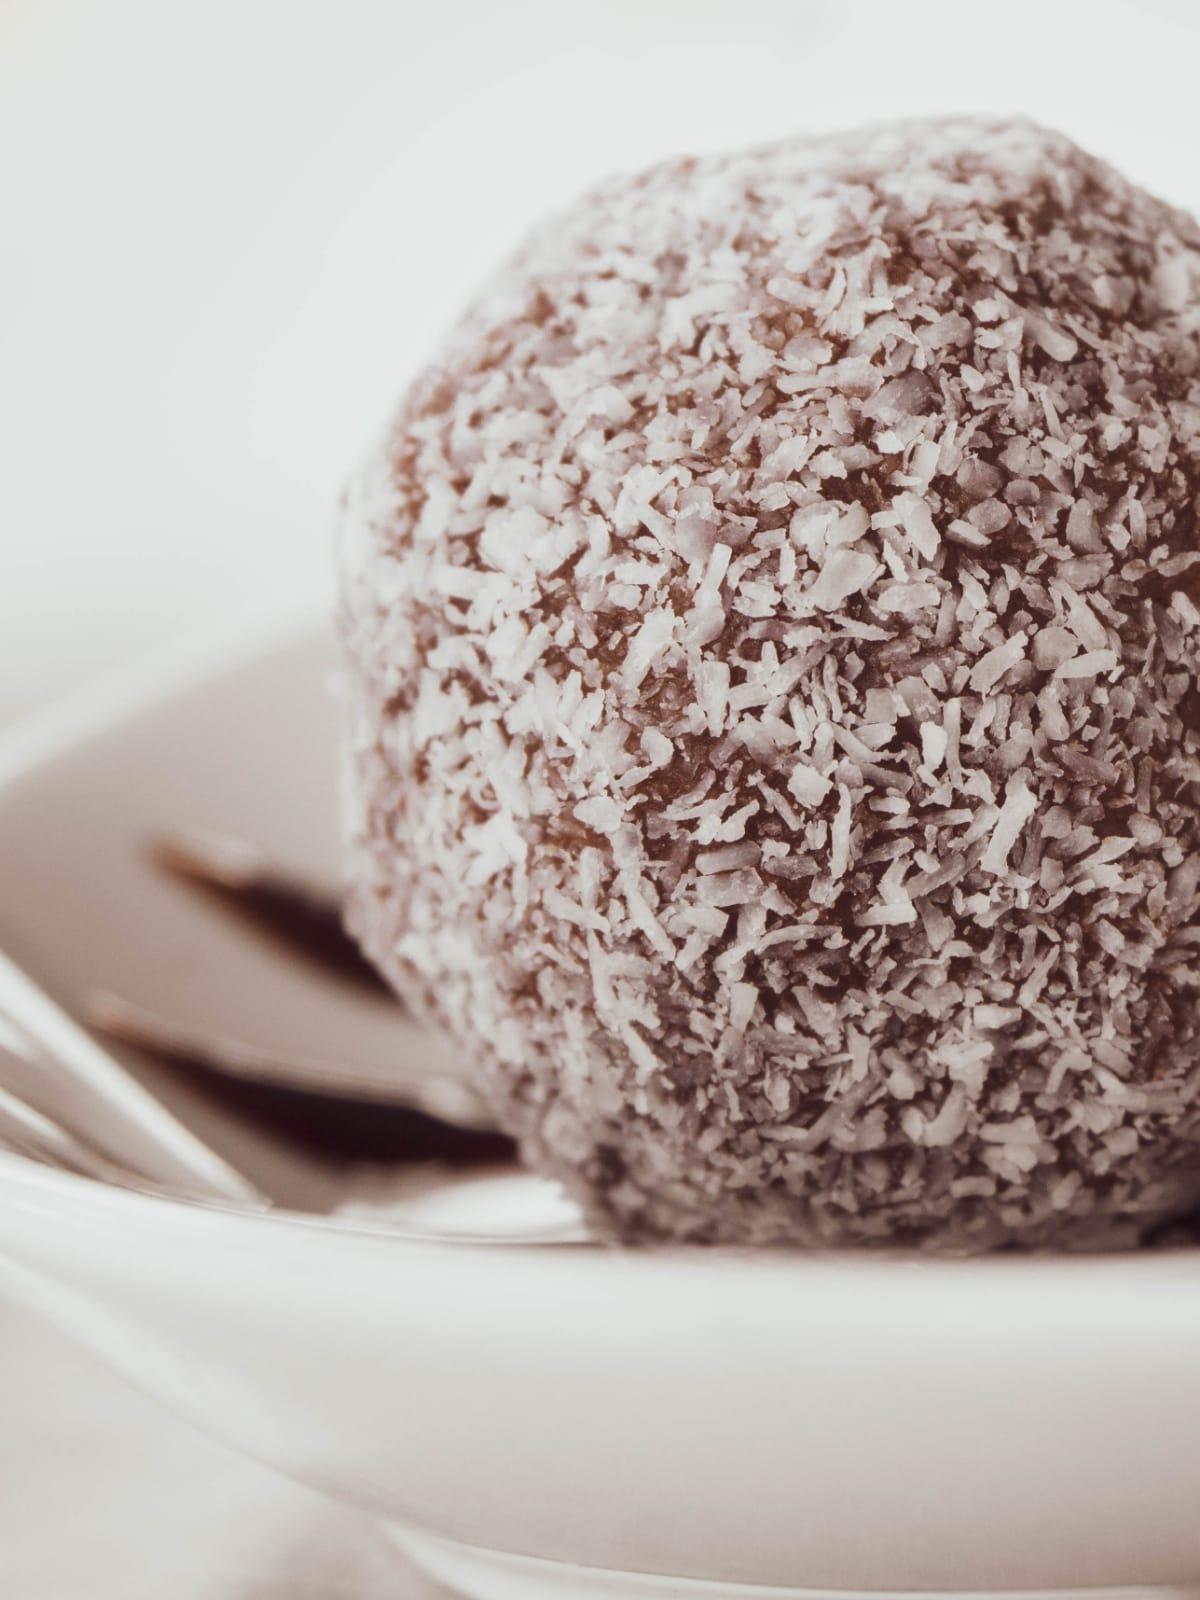 Rum balls - the real thing